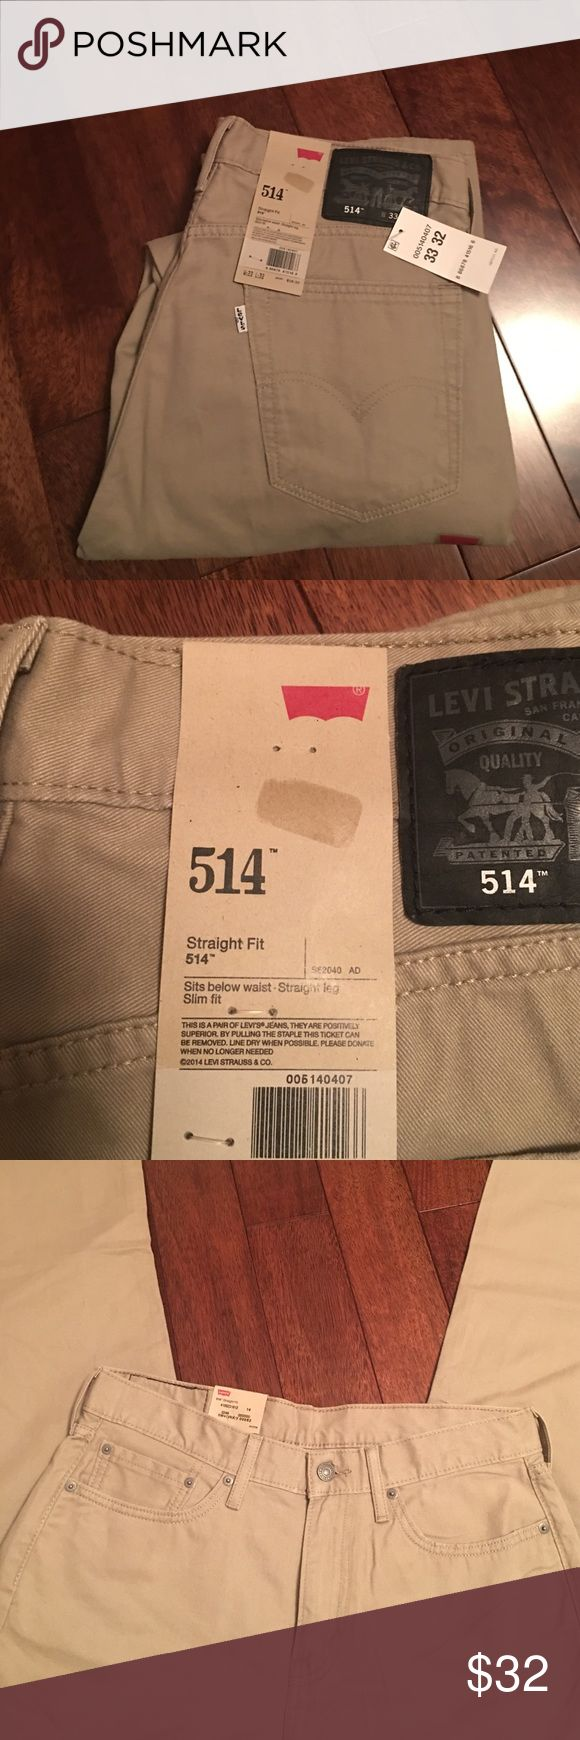 Men's Levi's 33x32 BRAND NEW WITH TAGS. Mens Levi's 33x32. Straight fit, style 514. Sits below waist. Straight leg. Slim fit. Levi's Jeans Straight